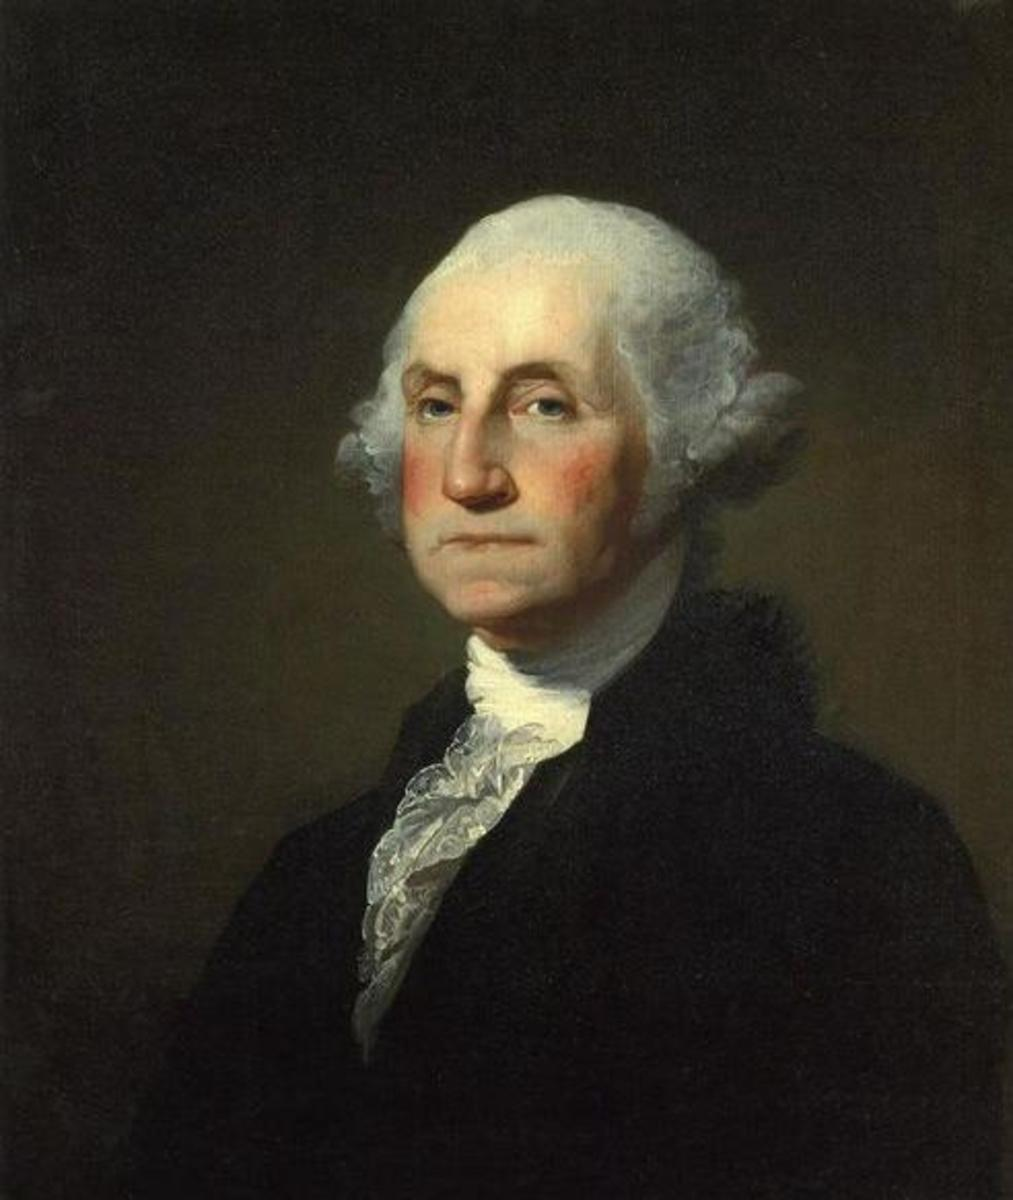 George Washington Portrait by Gilbert Stewart (http://en.wikipedia.org/wiki/File:Gilbert_Stuart_Williamstown_Portrait_of_George_Washington.jpg )